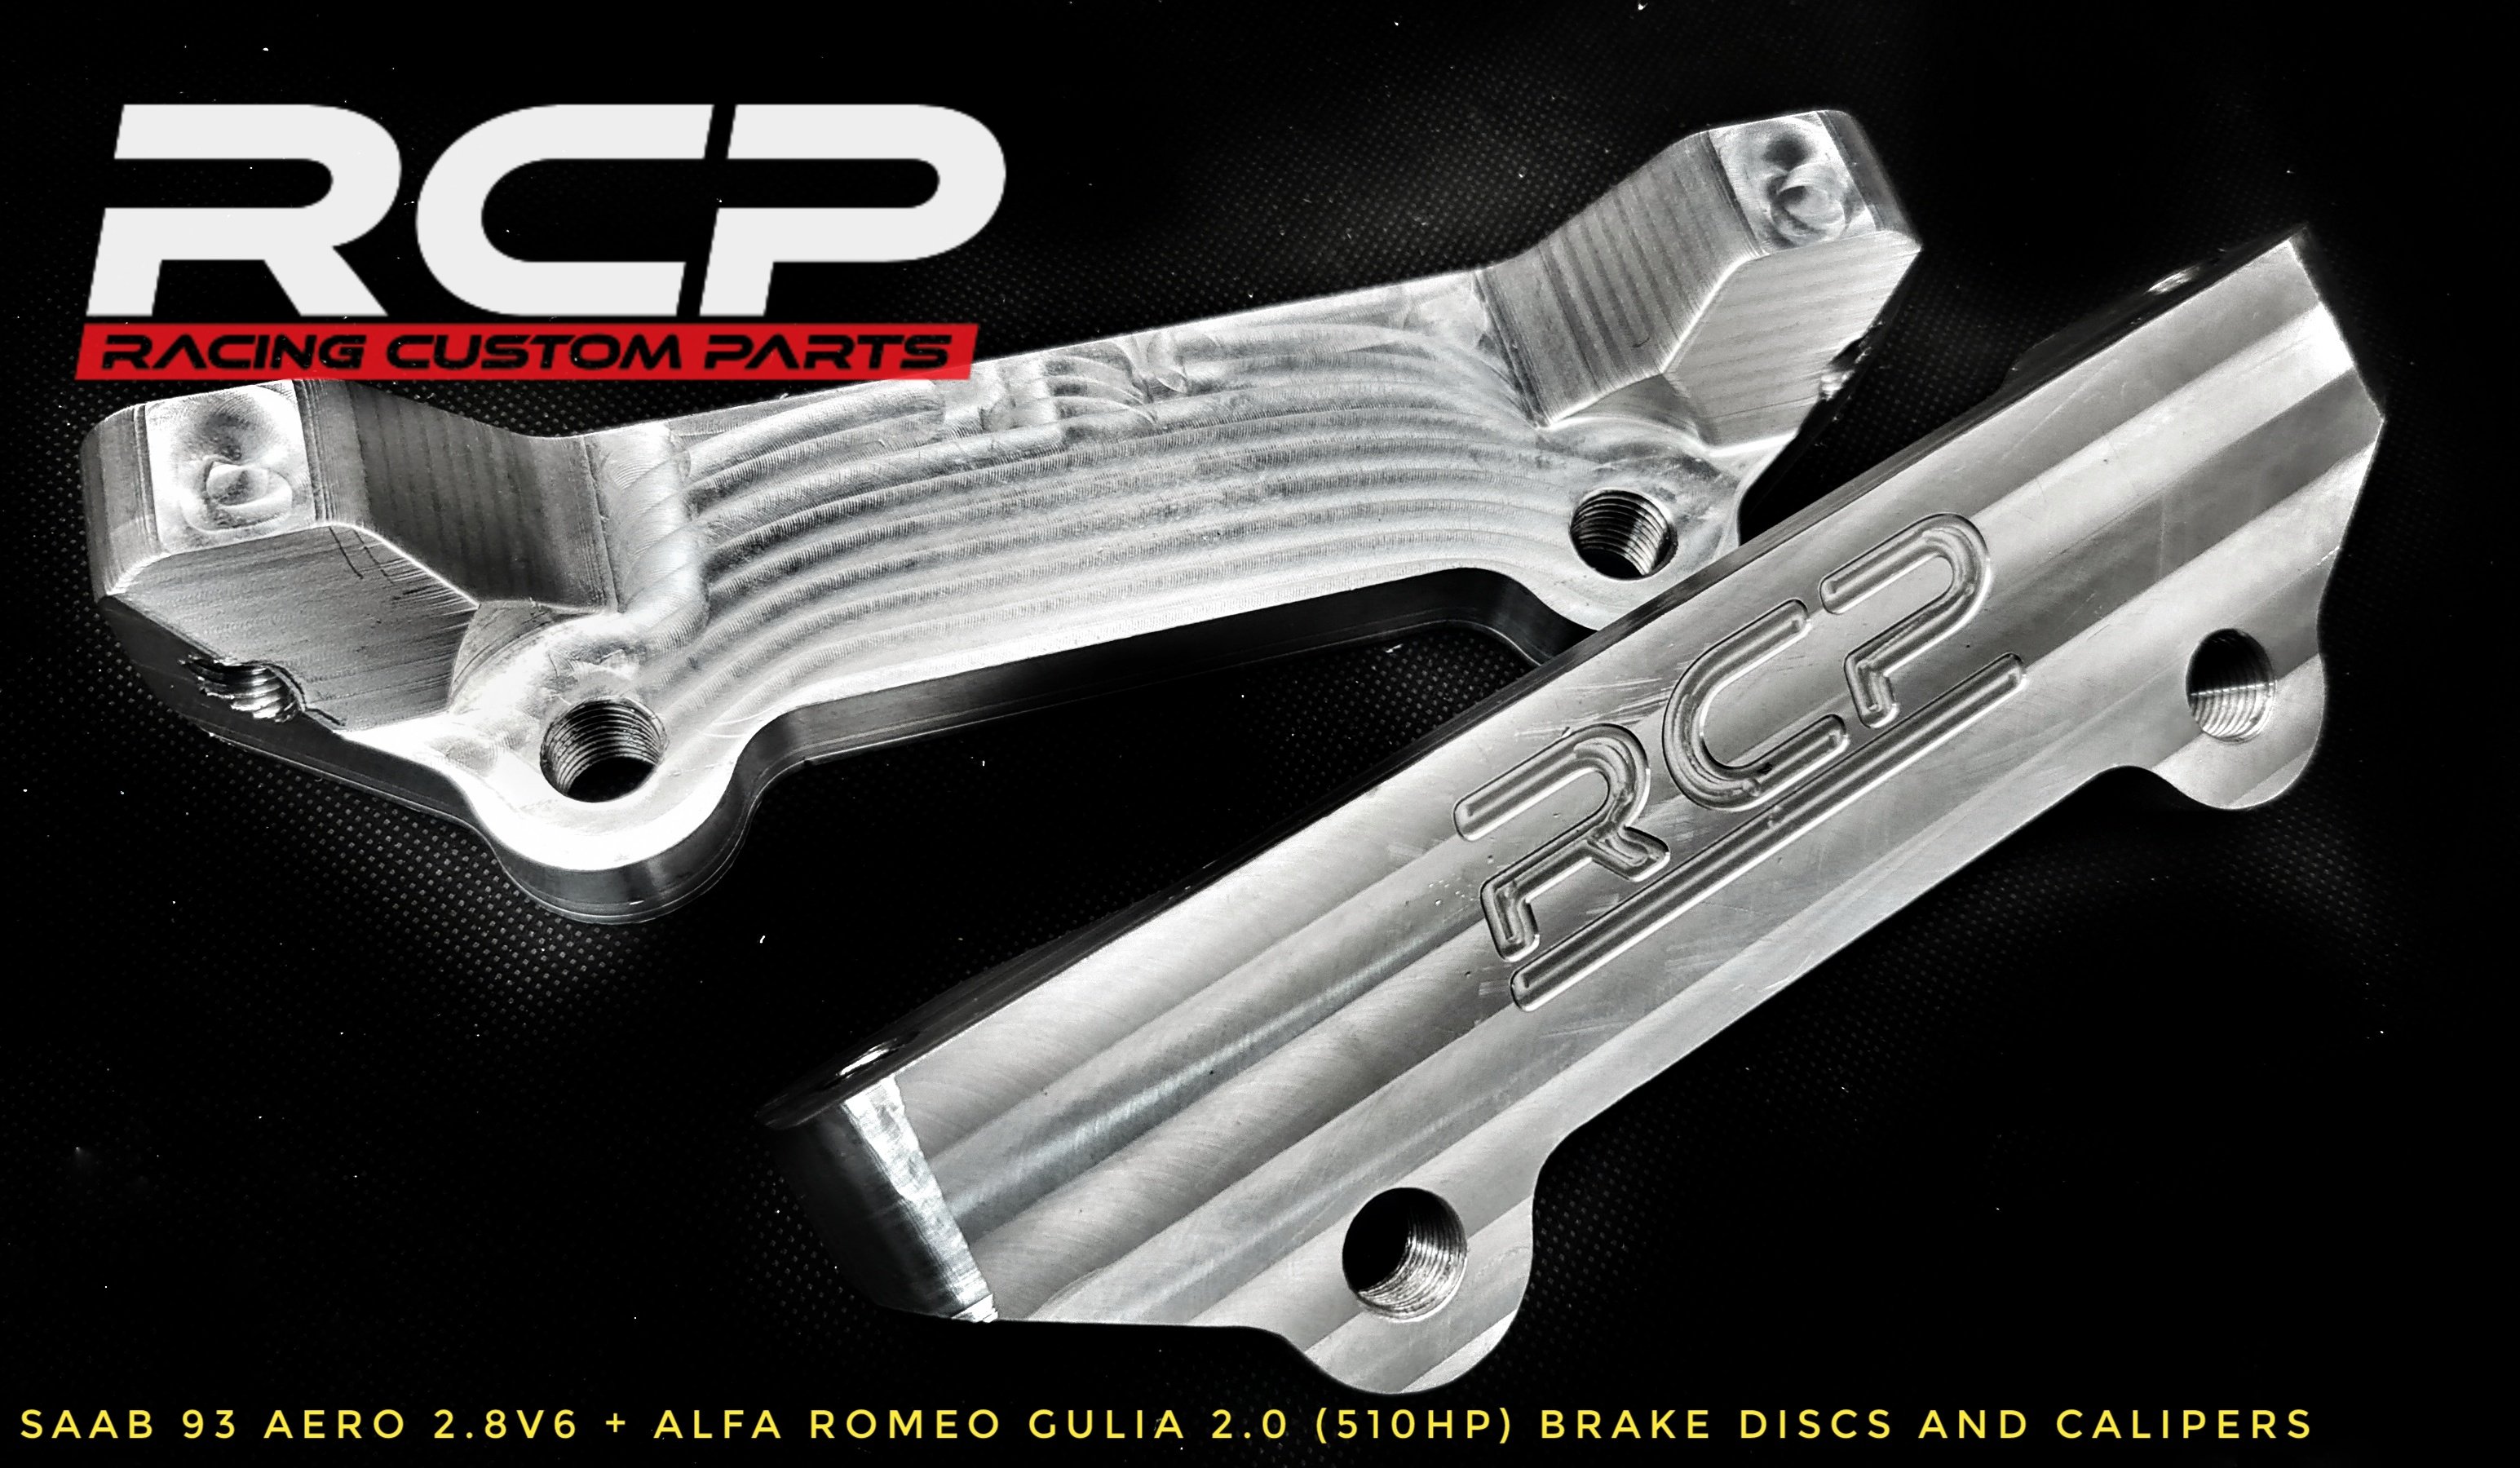 saab 93 aero 93 big brake brembo caliipers alfa romeo racing custom parts rcp billet cnc